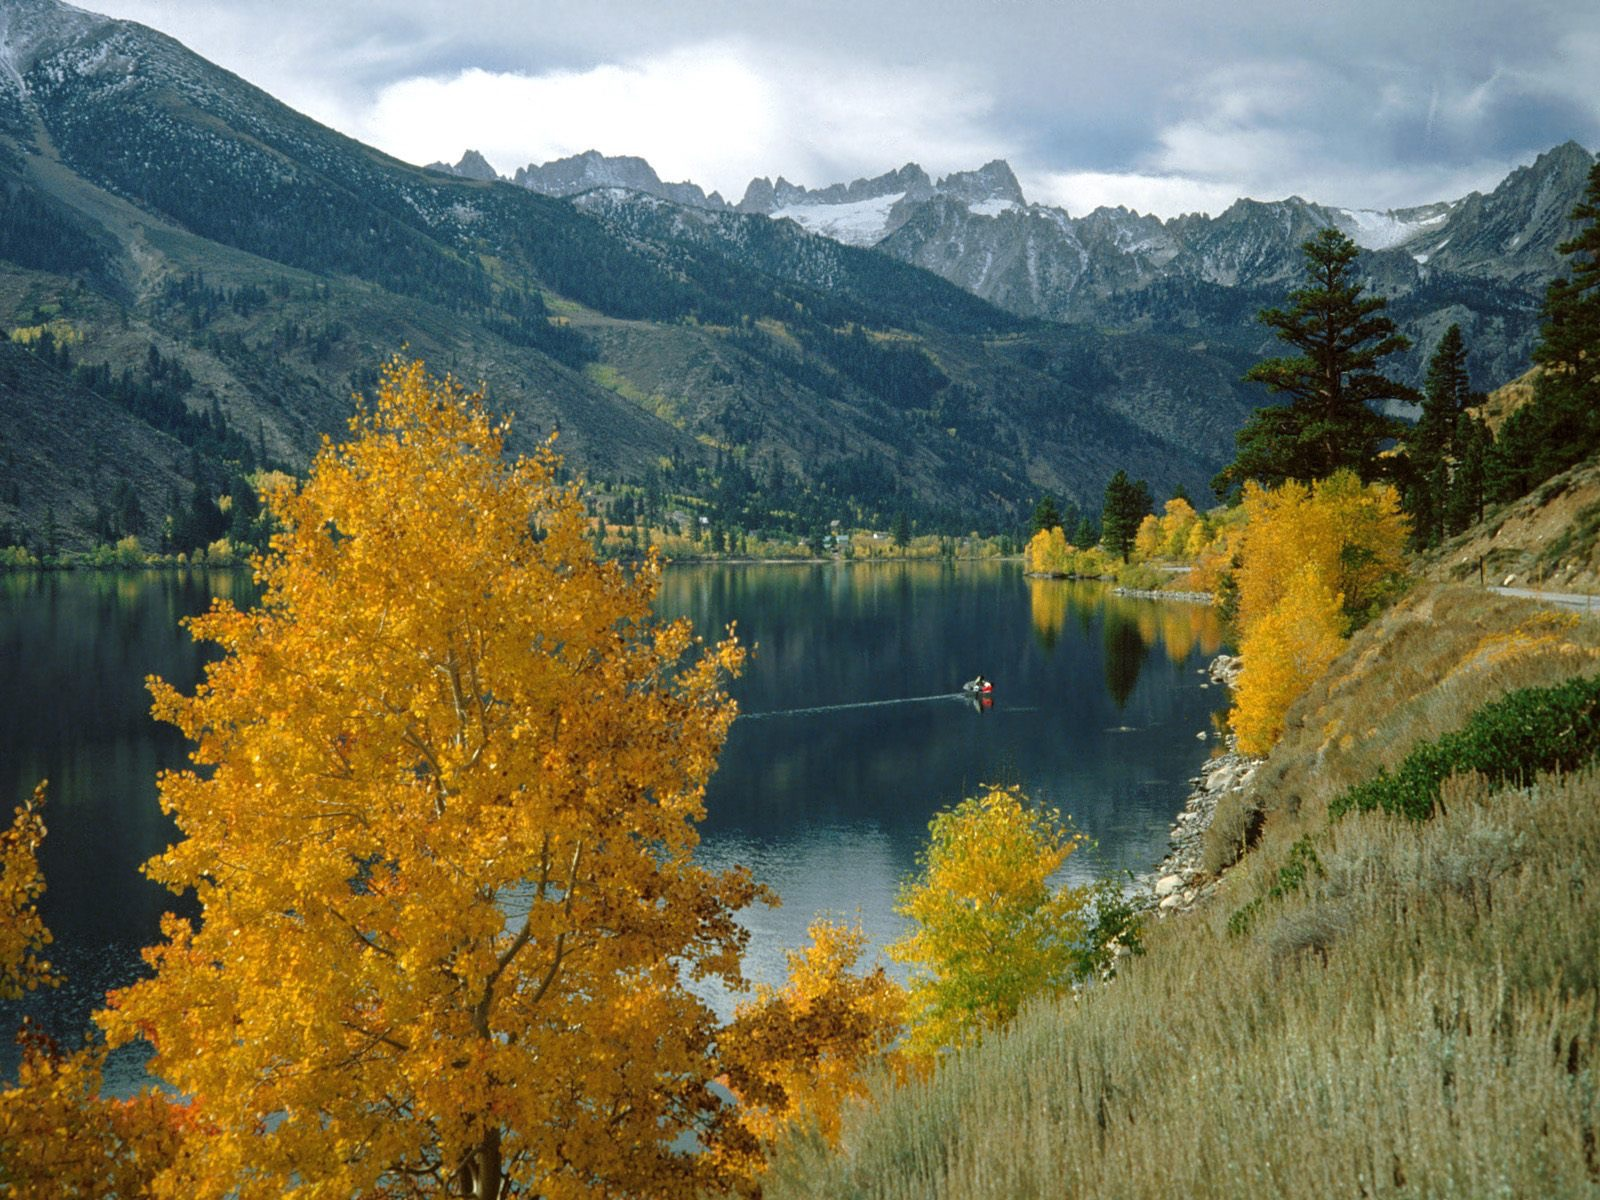 landscapes_twin_lakes_sawtooth_range_toiyabe_national_forest_california-71.jpg